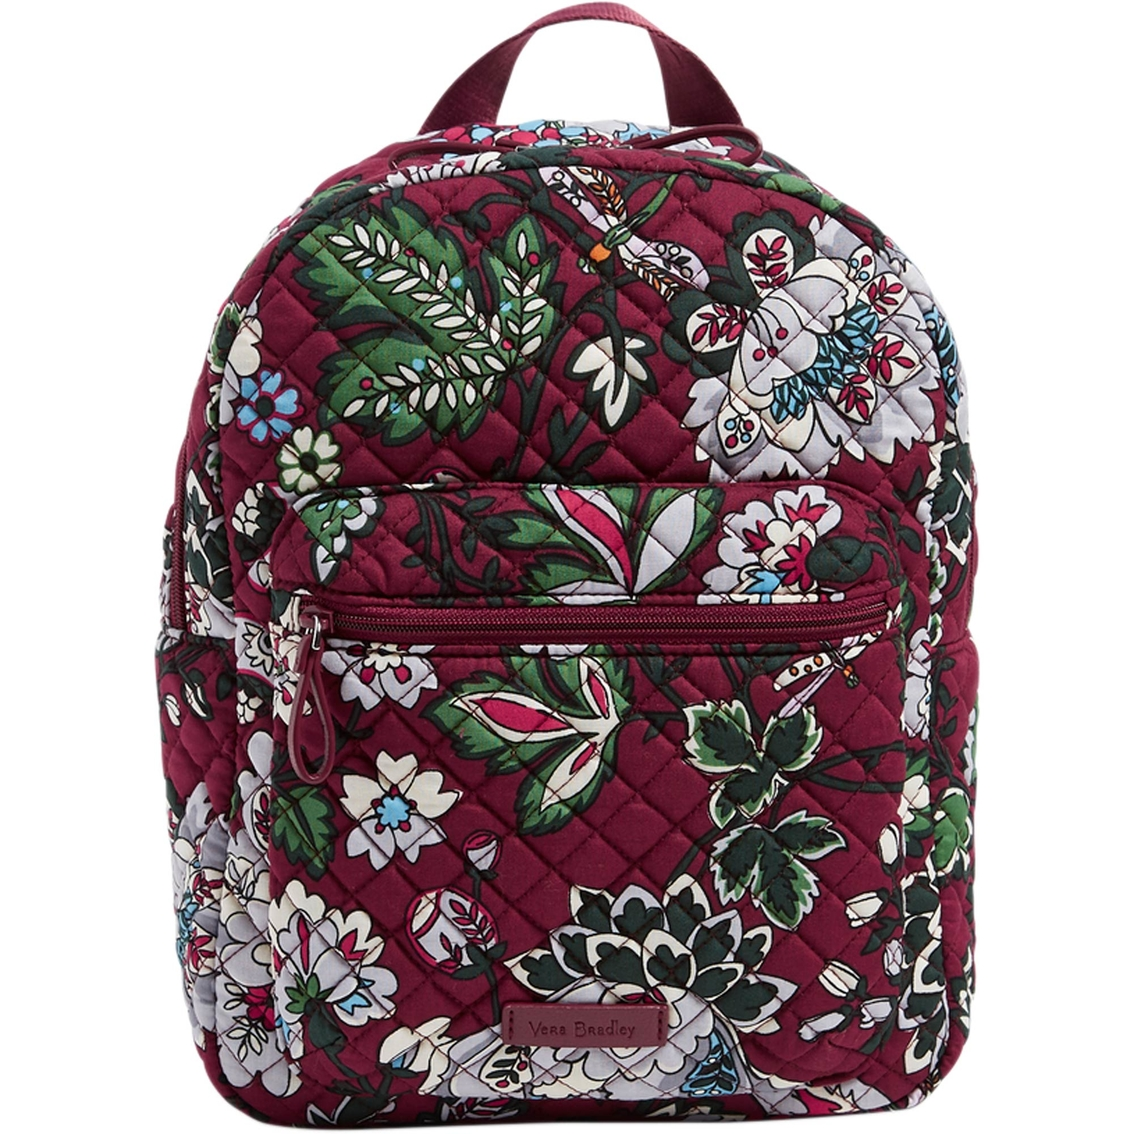 0f0c2e851d6e Vera Bradley Iconic Leighton Backpack Bordeaux Blooms